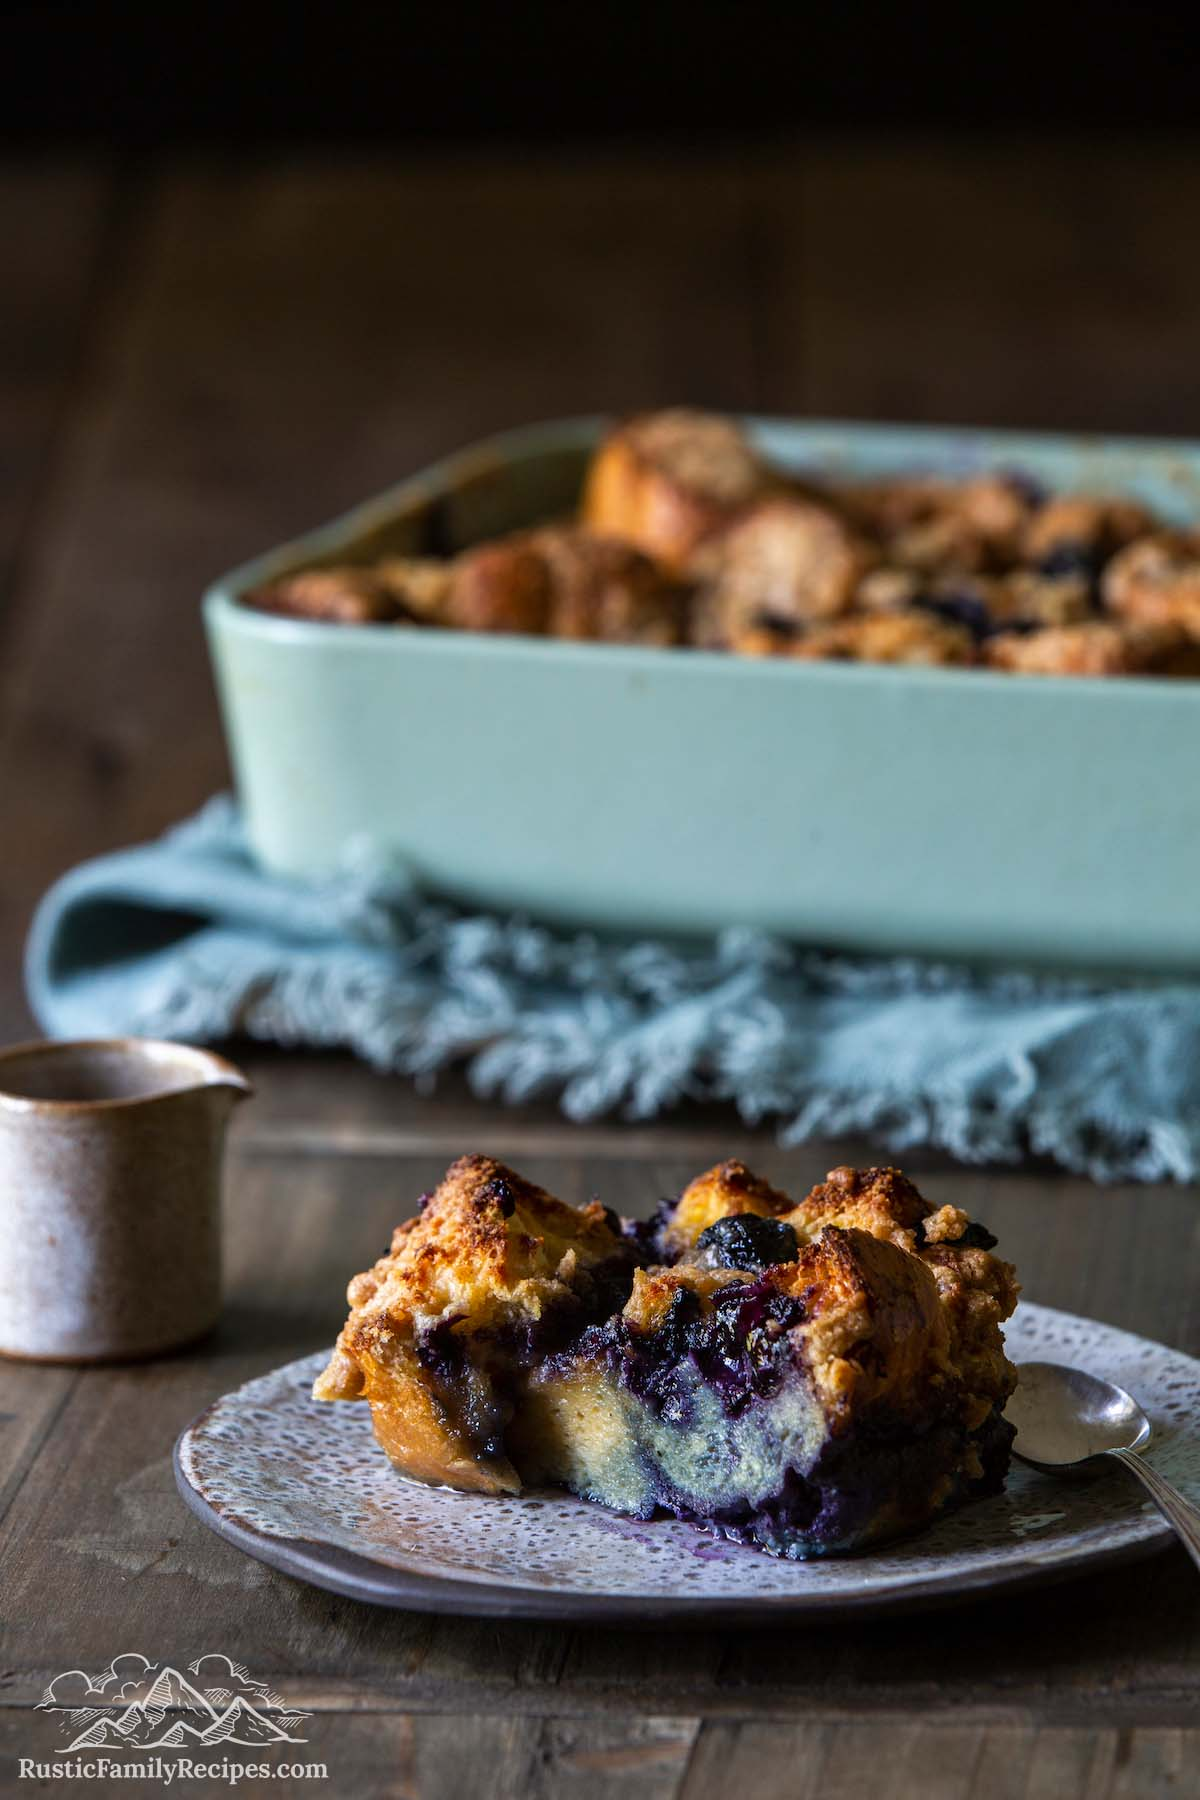 A slice of french toast casserole in front of a blue baking dish